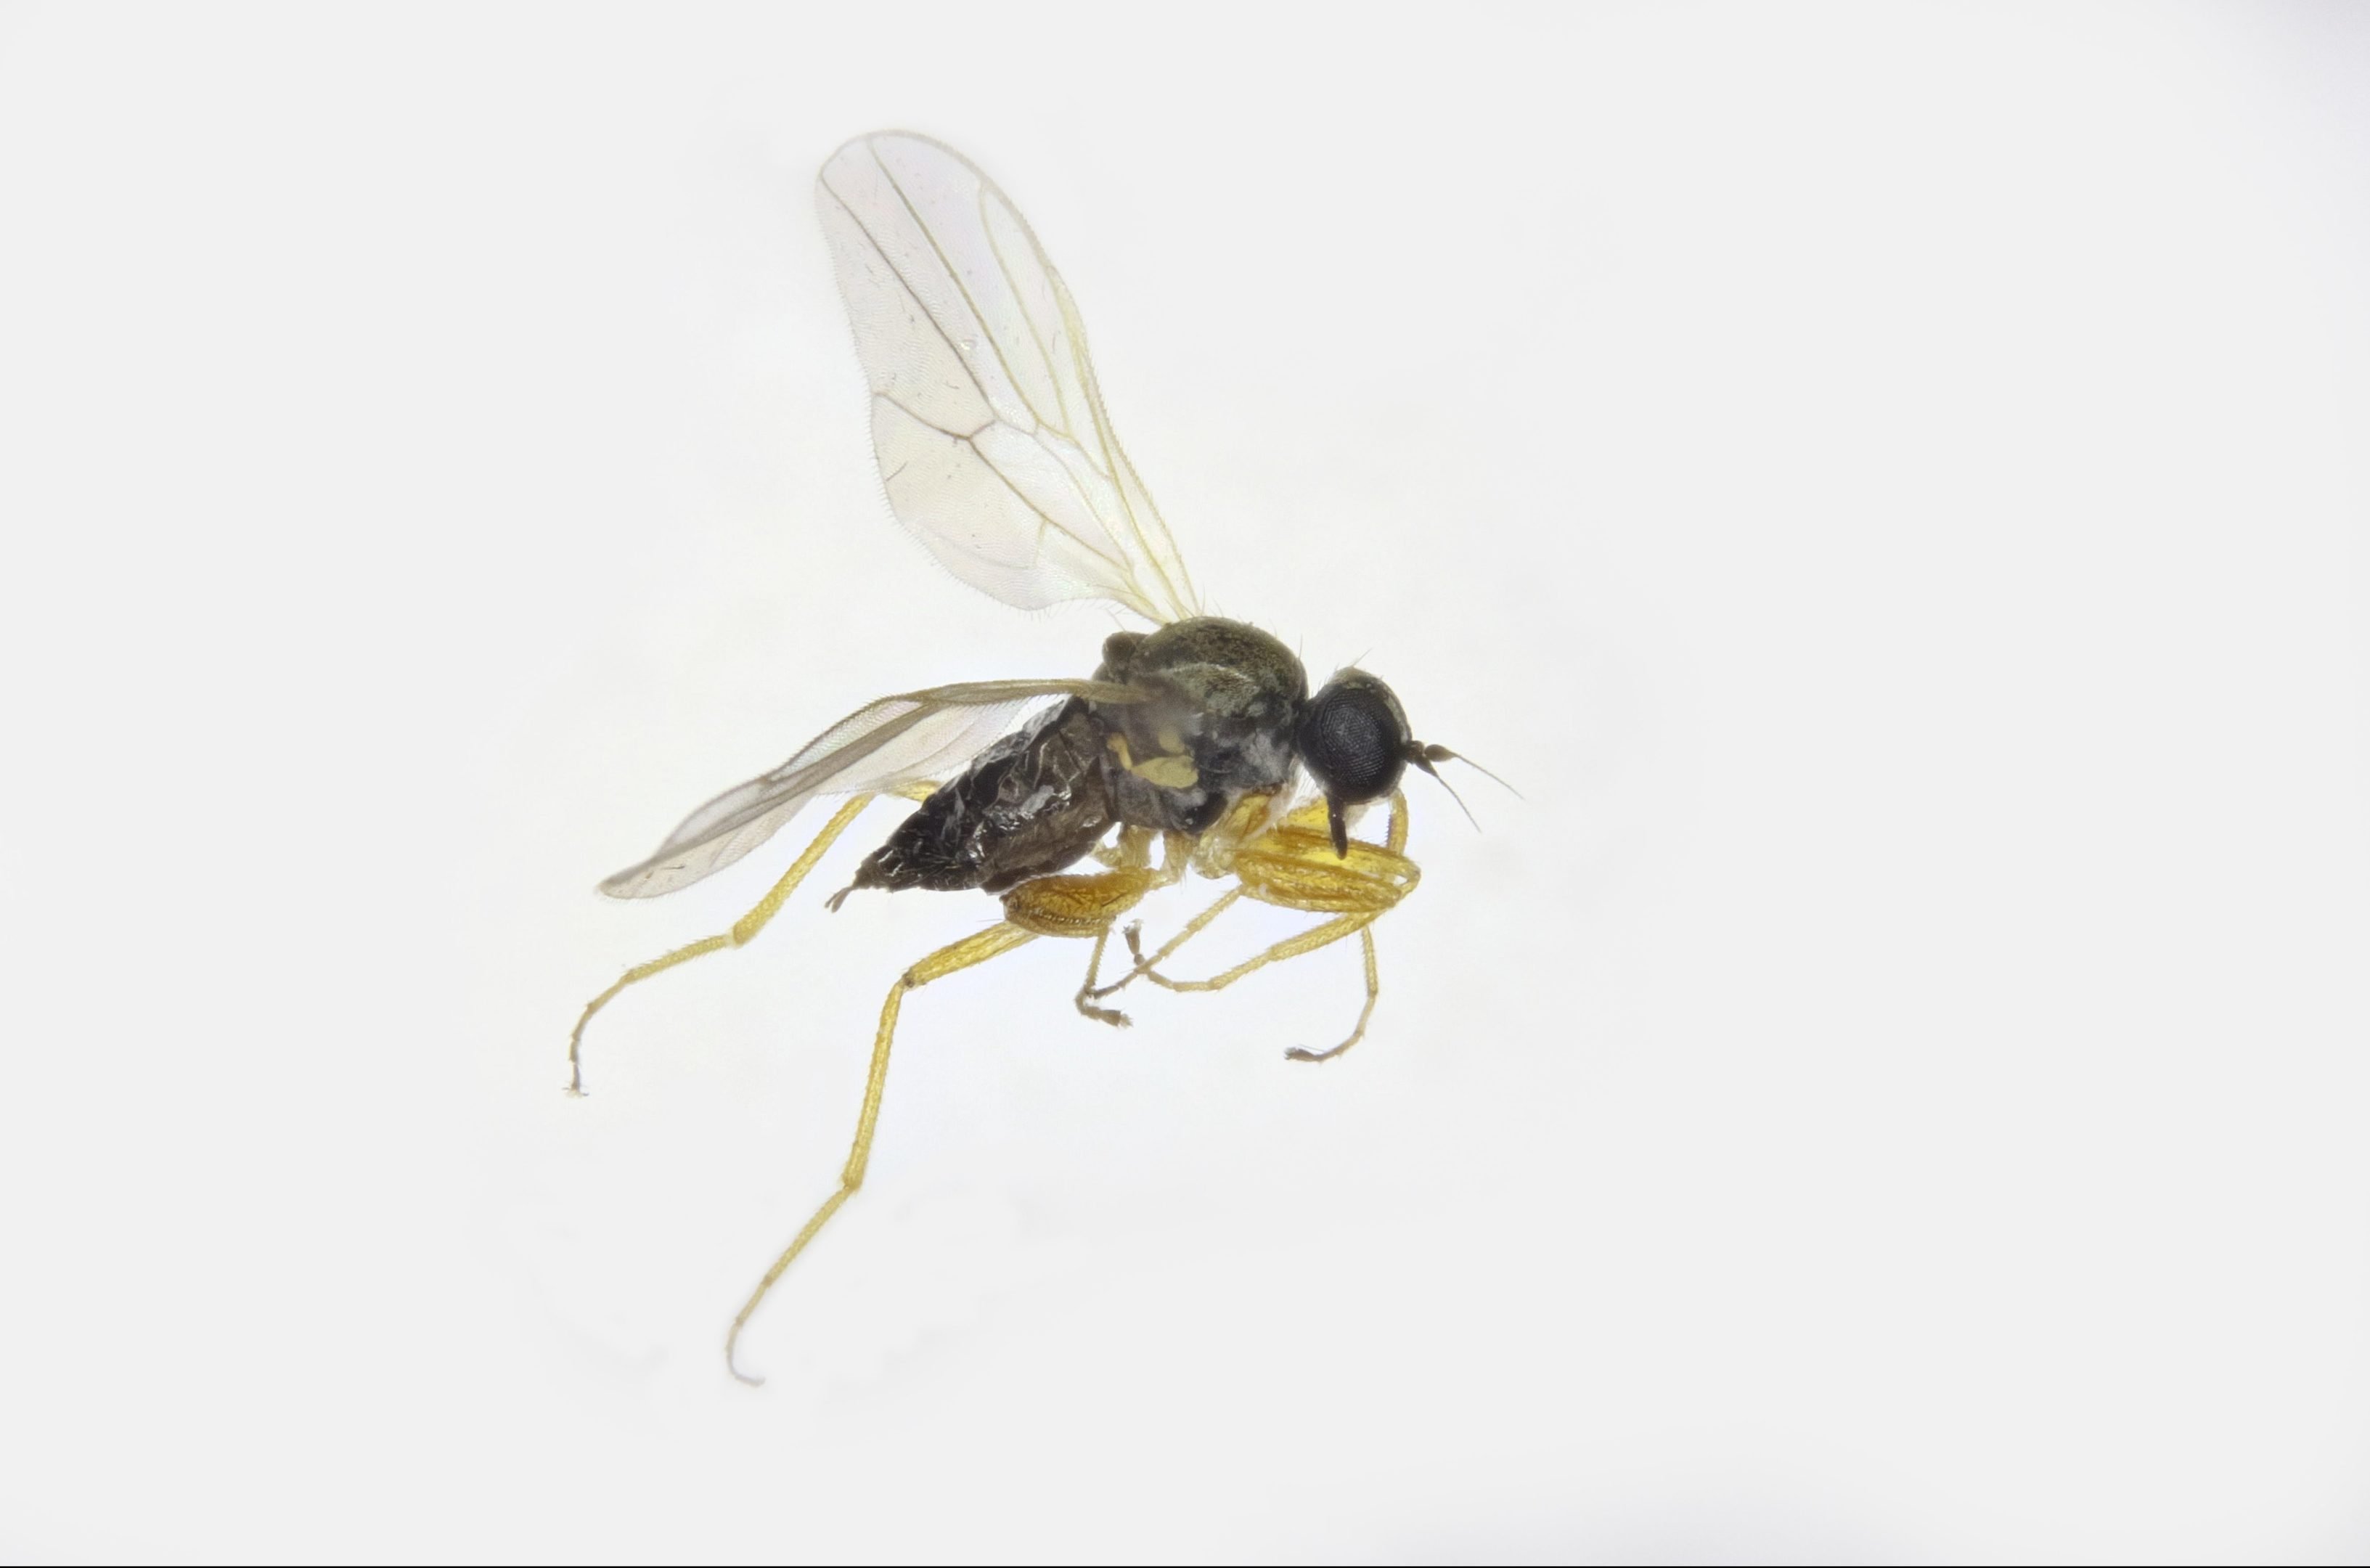 The fly discovered in Perthshire.